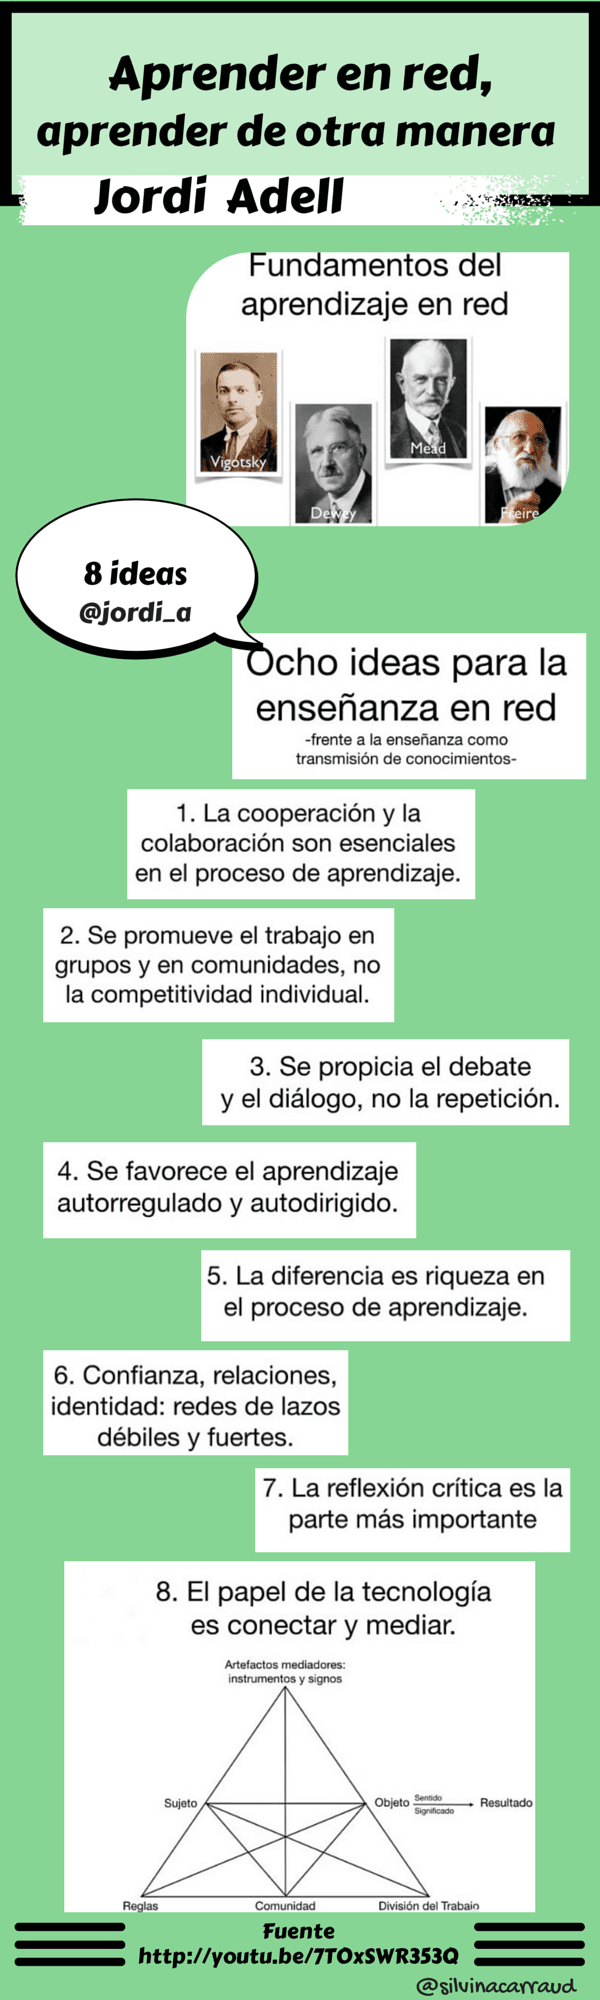 8IdeasAbordarEnseñanzaRed-Infografía-BlogGesvin